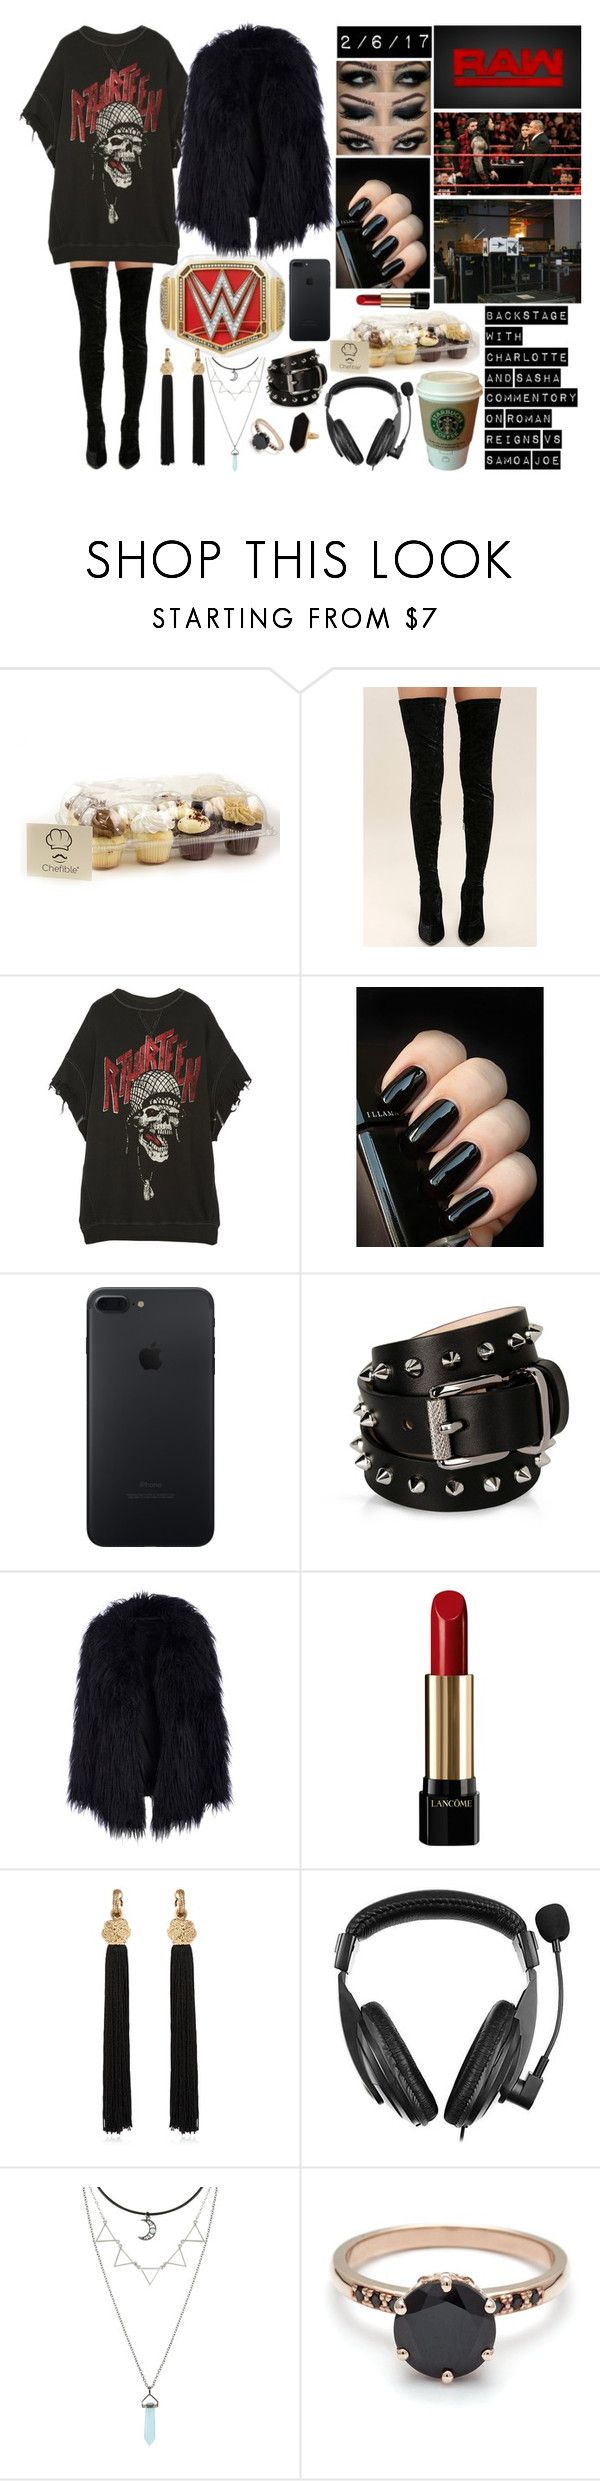 """Bez tytułu #1105"" by kereneza ❤ liked on Polyvore featuring WWE, Cape Robbin, R13, mel, Barbara Bui, Lancôme, MANGO, Yves Saint Laurent, Insten and Jaeger"